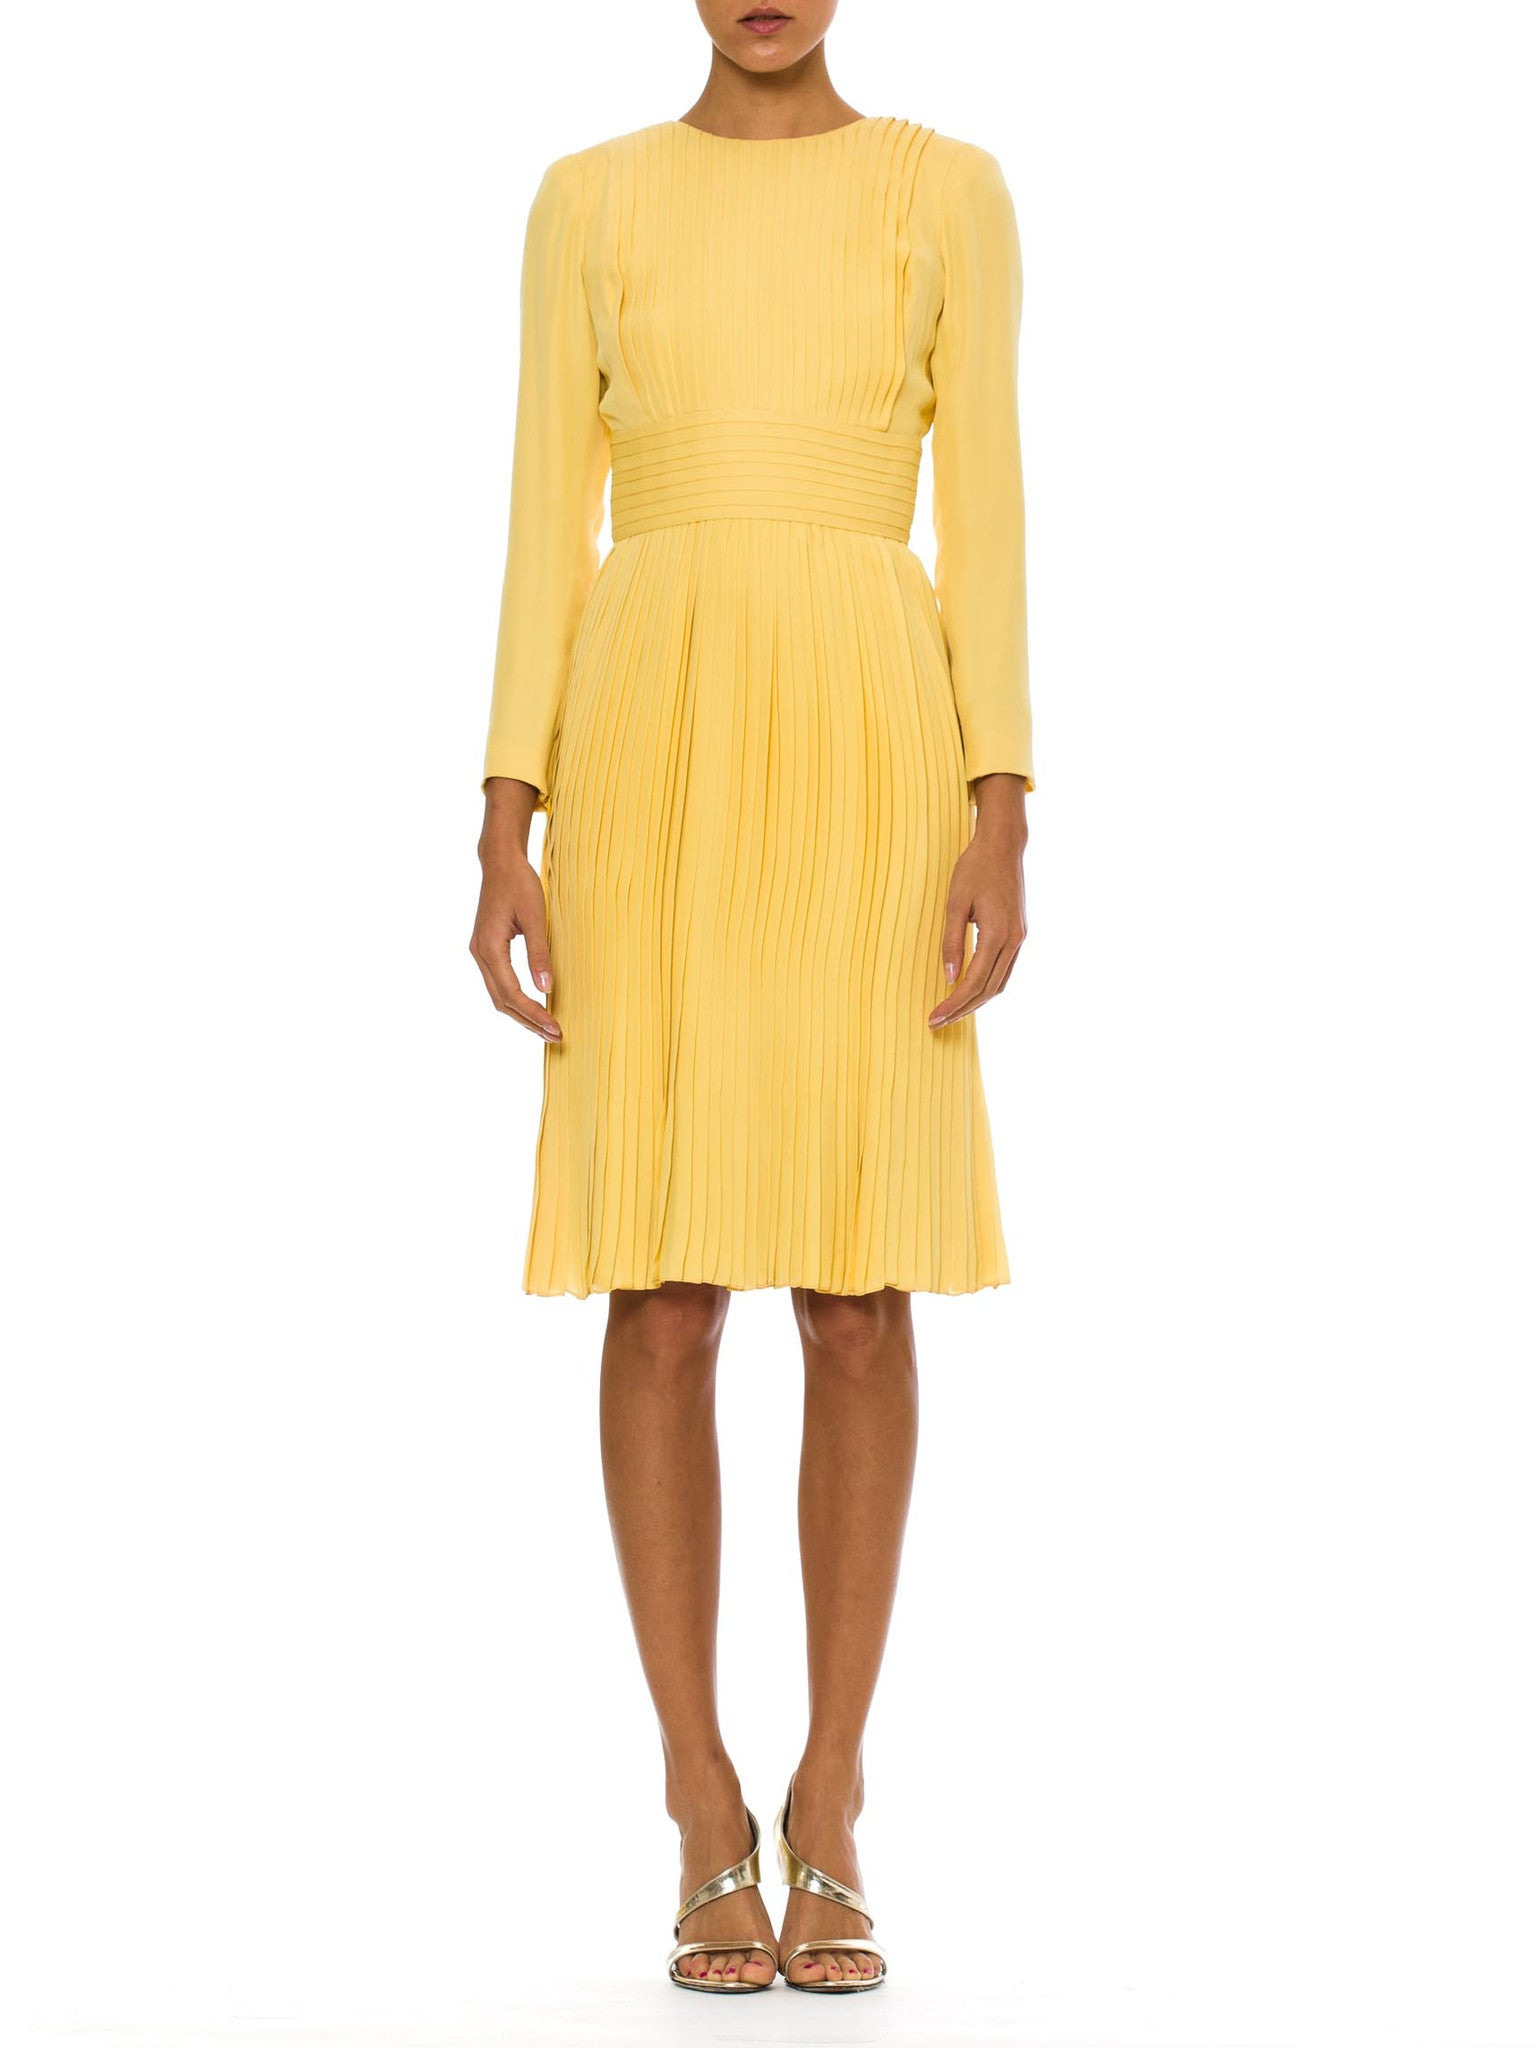 1970s Vintage Pale Yellow Pleated Silk Dress by JAMES GALANOS